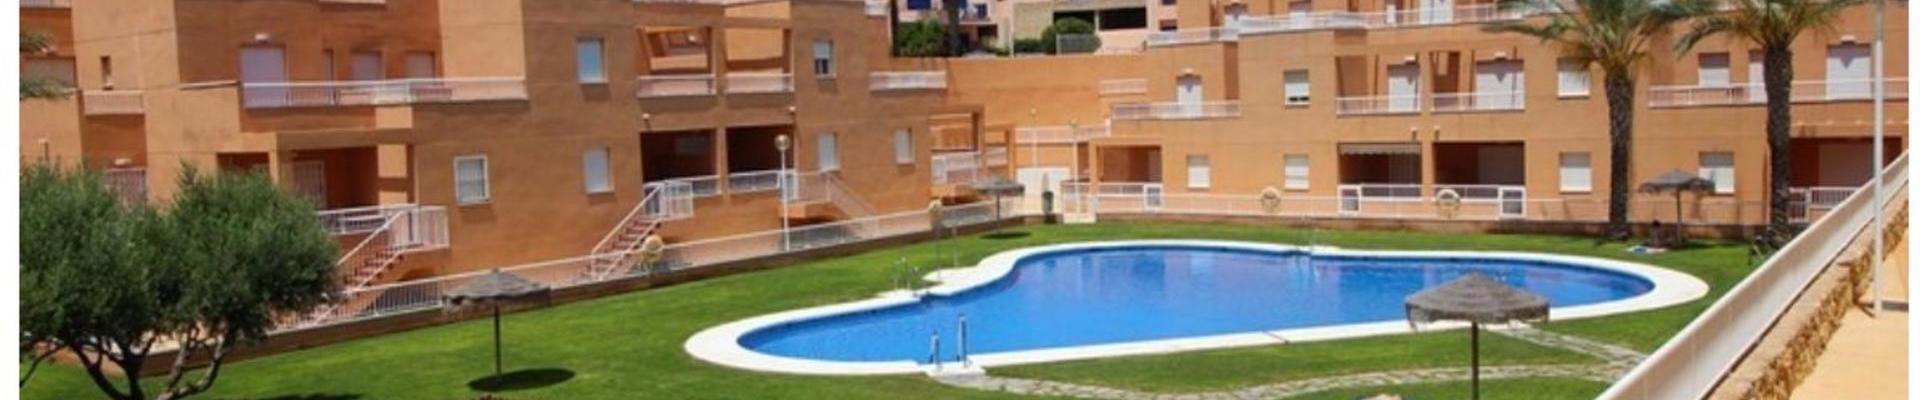 A1384: 2 Bedroom Apartment for Sale